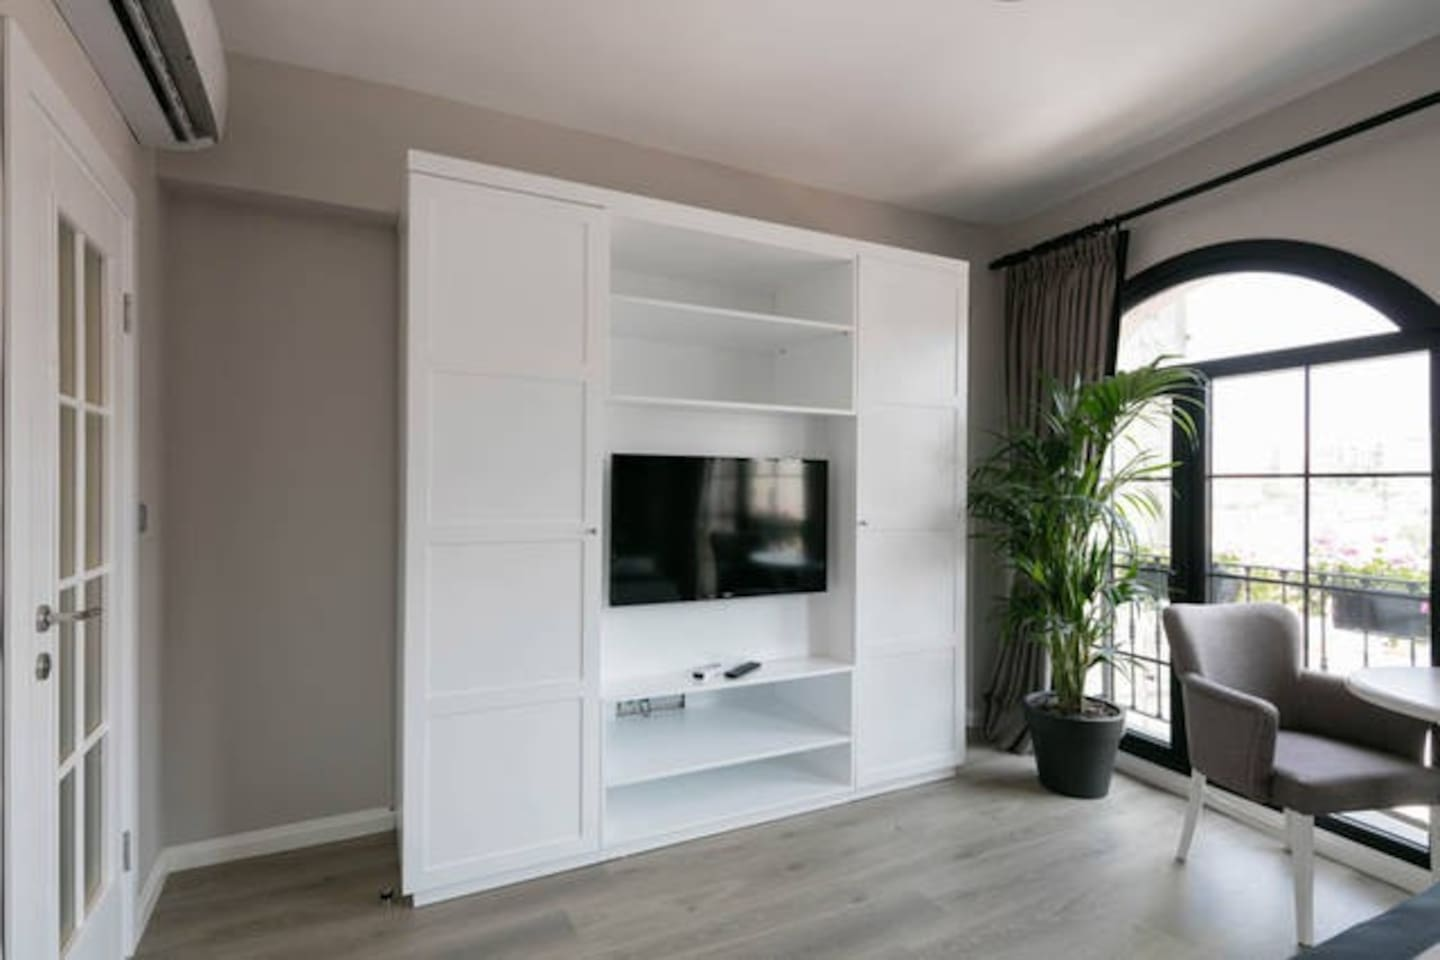 Apartment with city view in Beyoğlu 3